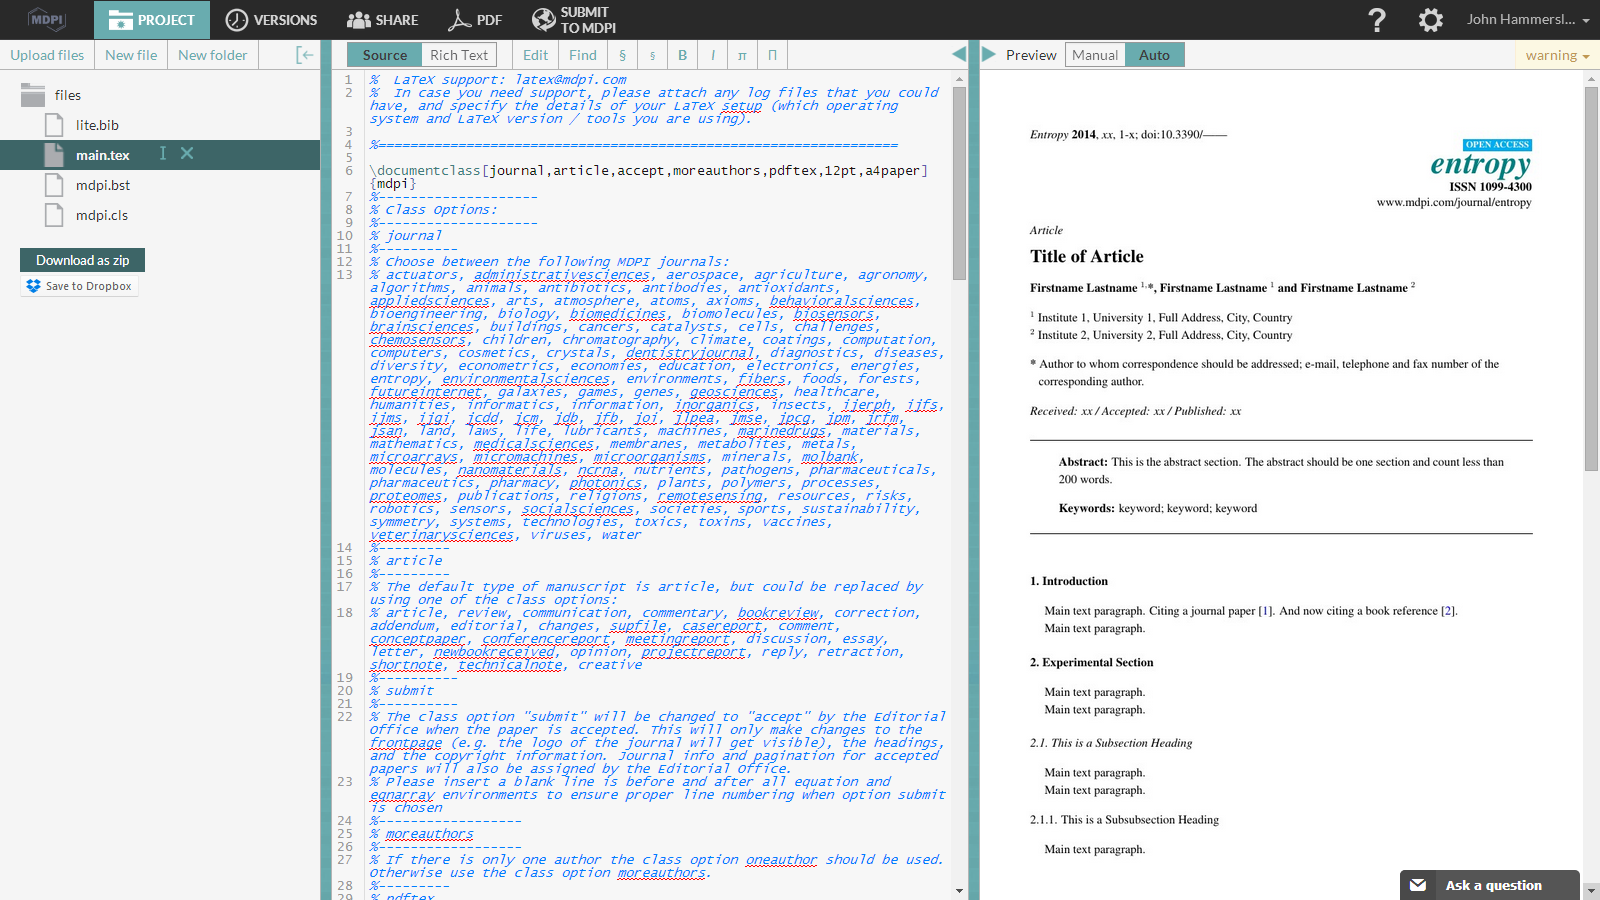 WriteLaTeX MDPI publish submission screenshot 2